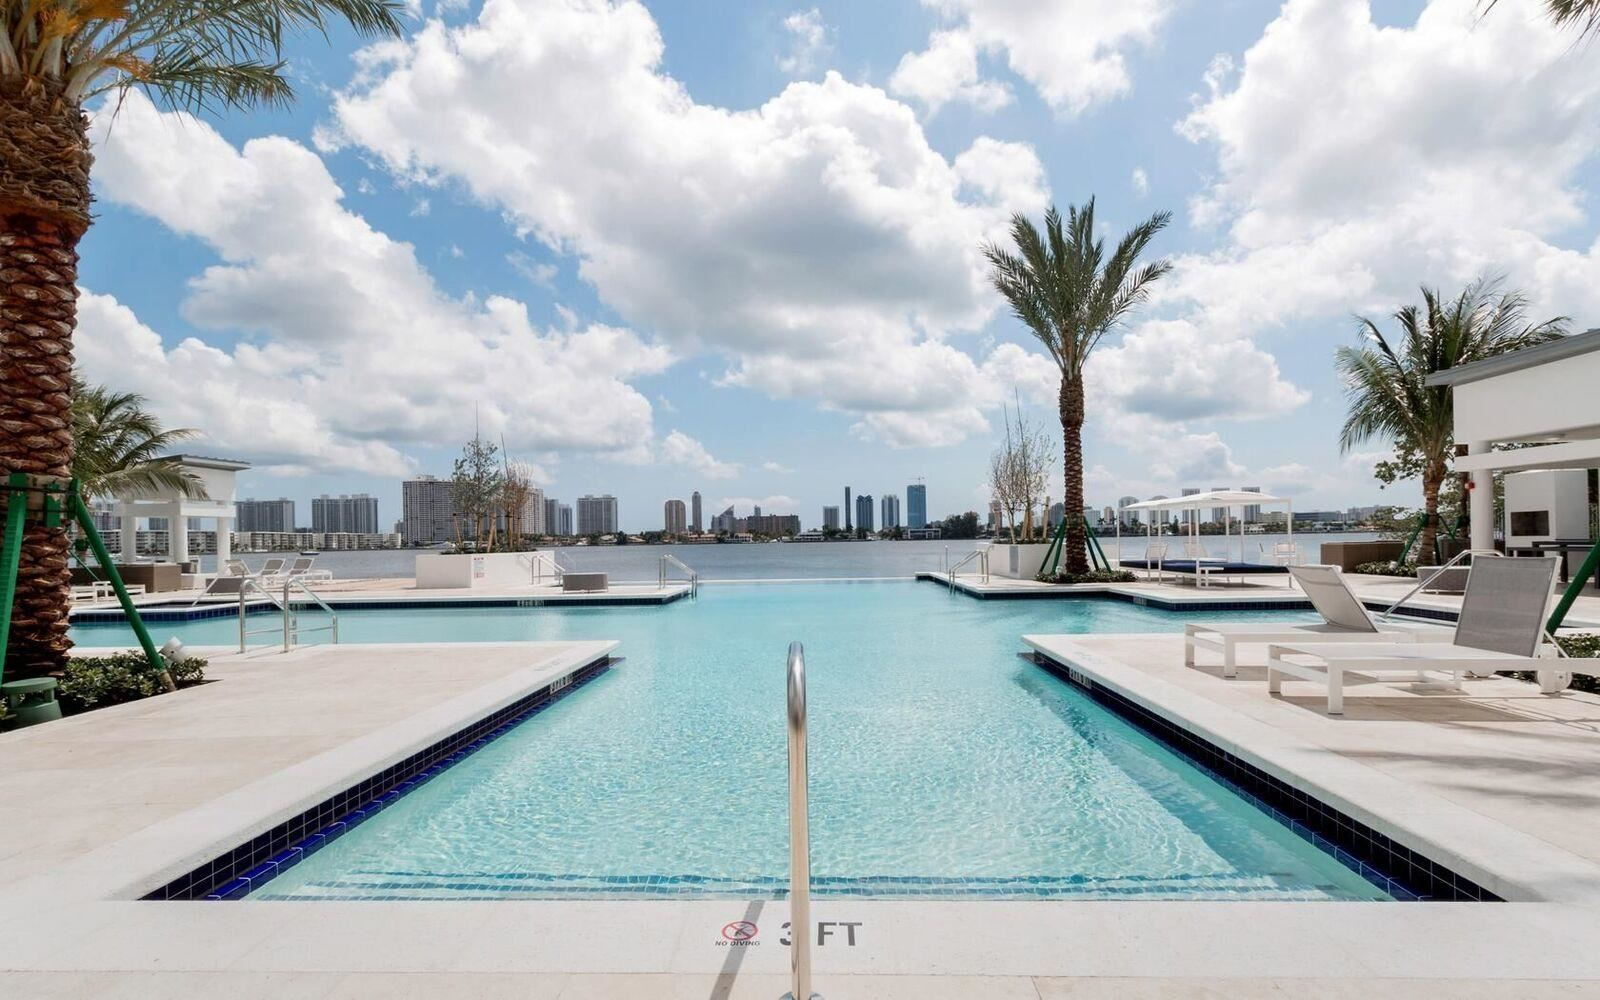 17111 Biscayne Boulevard #904, North Miami Beach, FL 33160 - #: RX-10667937